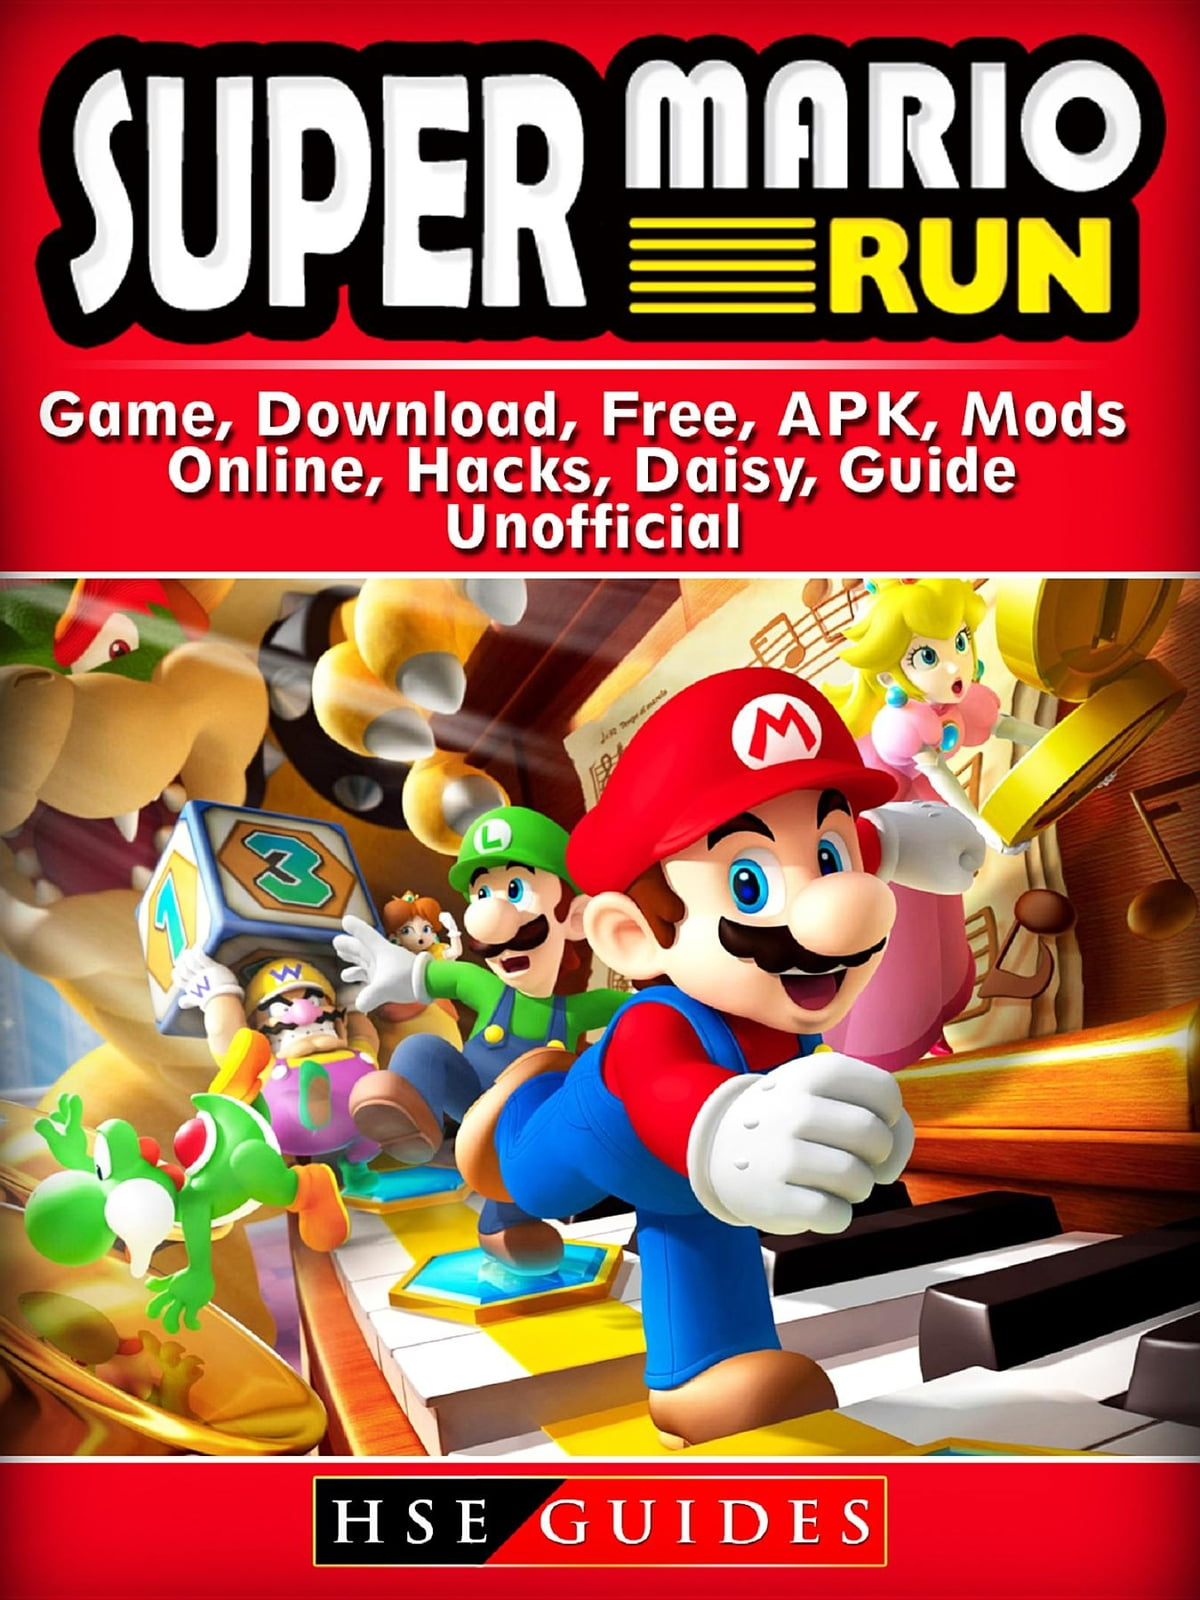 Super Mario Run Game, Download, Free, APK, Mods, Online, Hacks, Daisy,  Guide Unofficial ebooks by HSE Guides - Rakuten Kobo